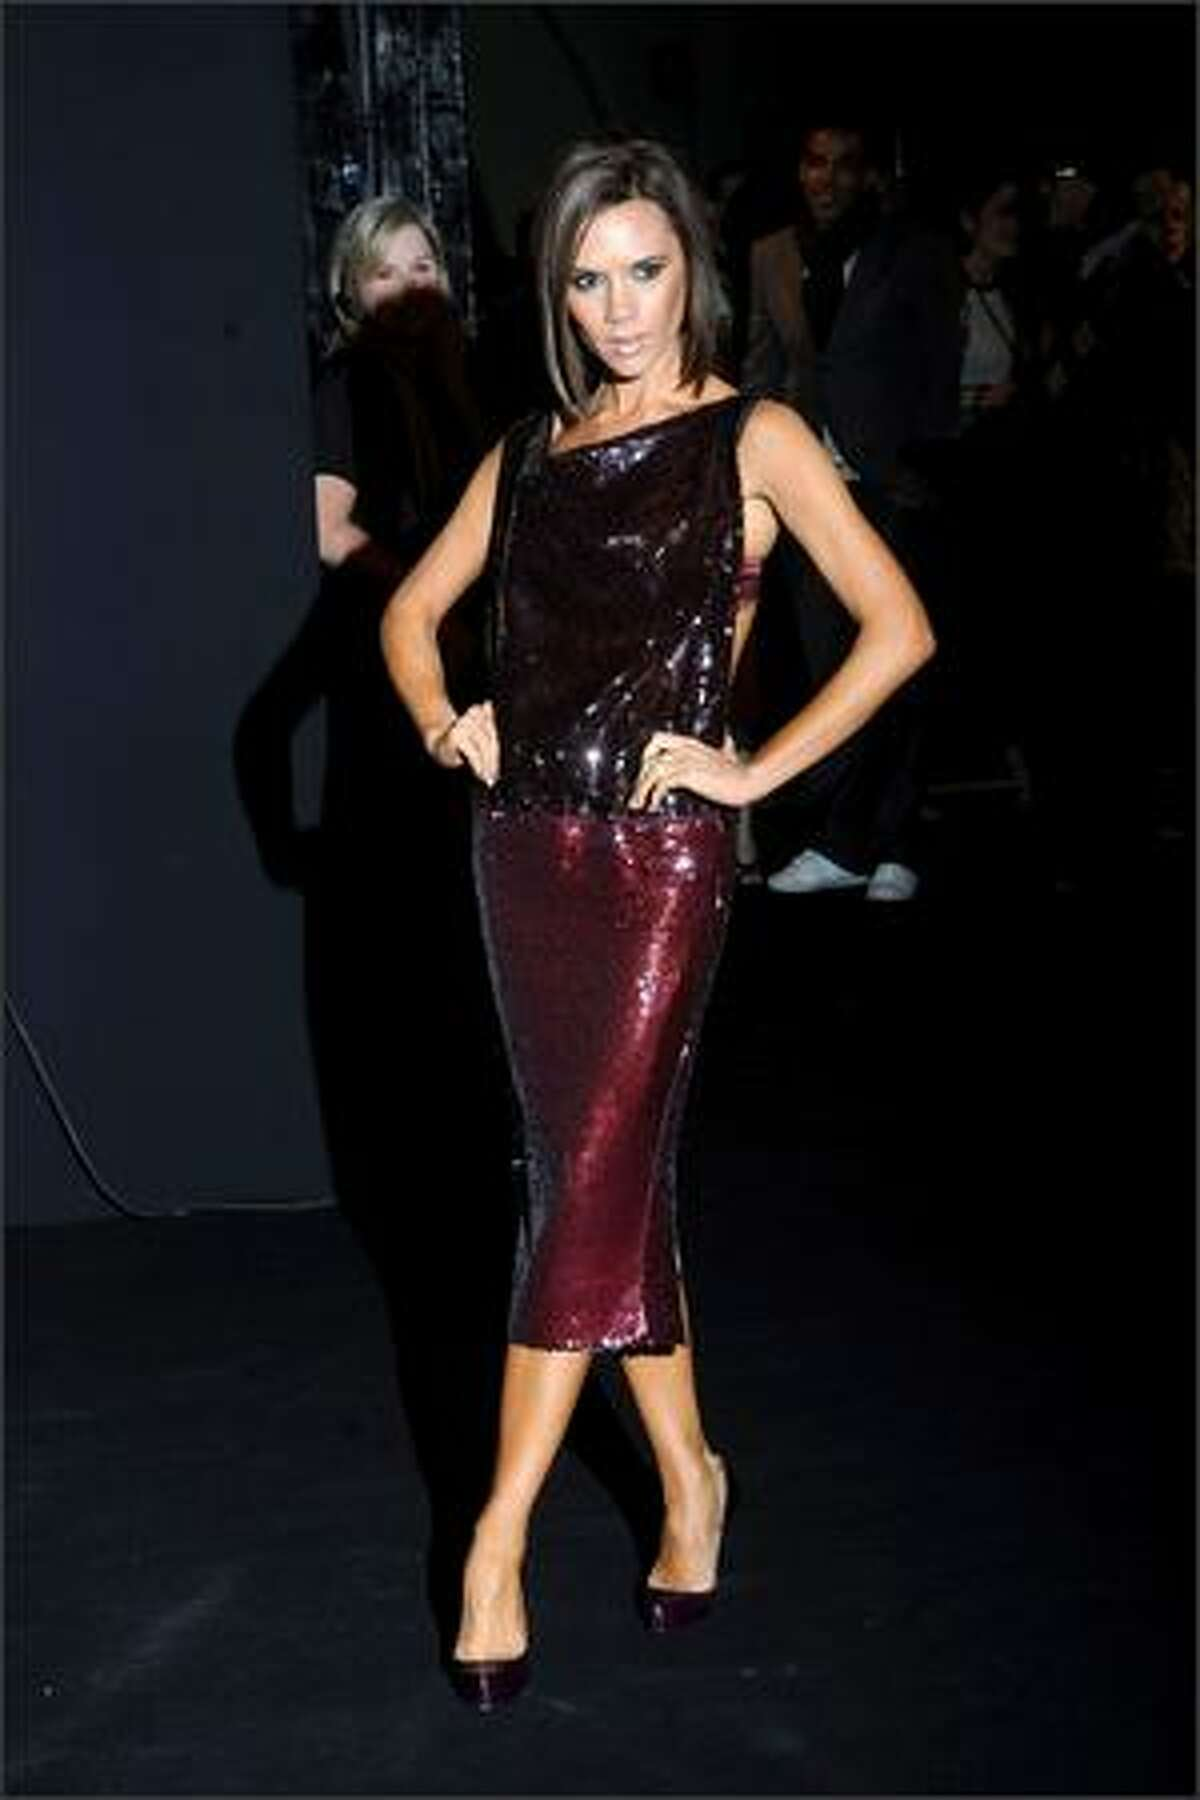 No. 99: Singer Victoria Beckham (photo taken February 2008).